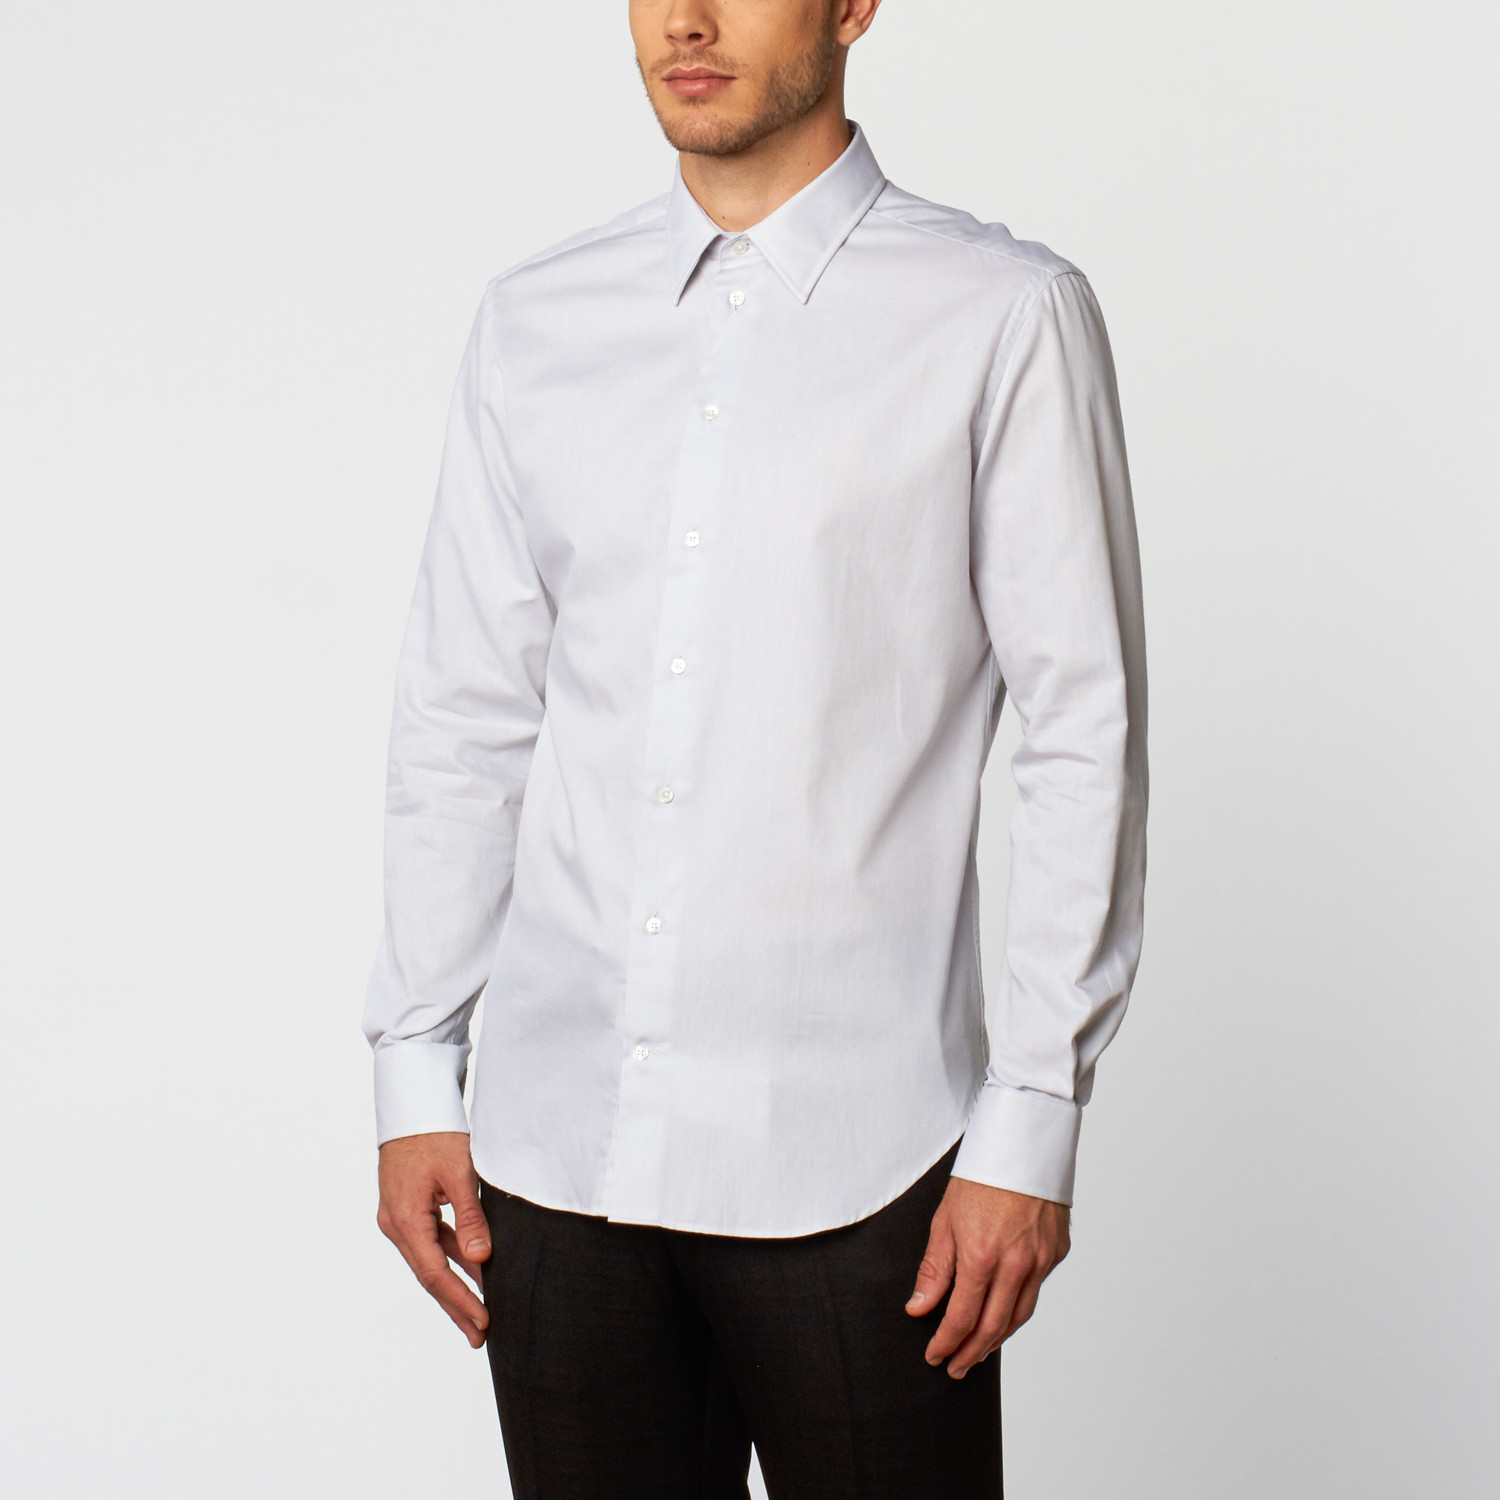 Classic long sleeve dress shirt white us 14 5r for Classic white dress shirt